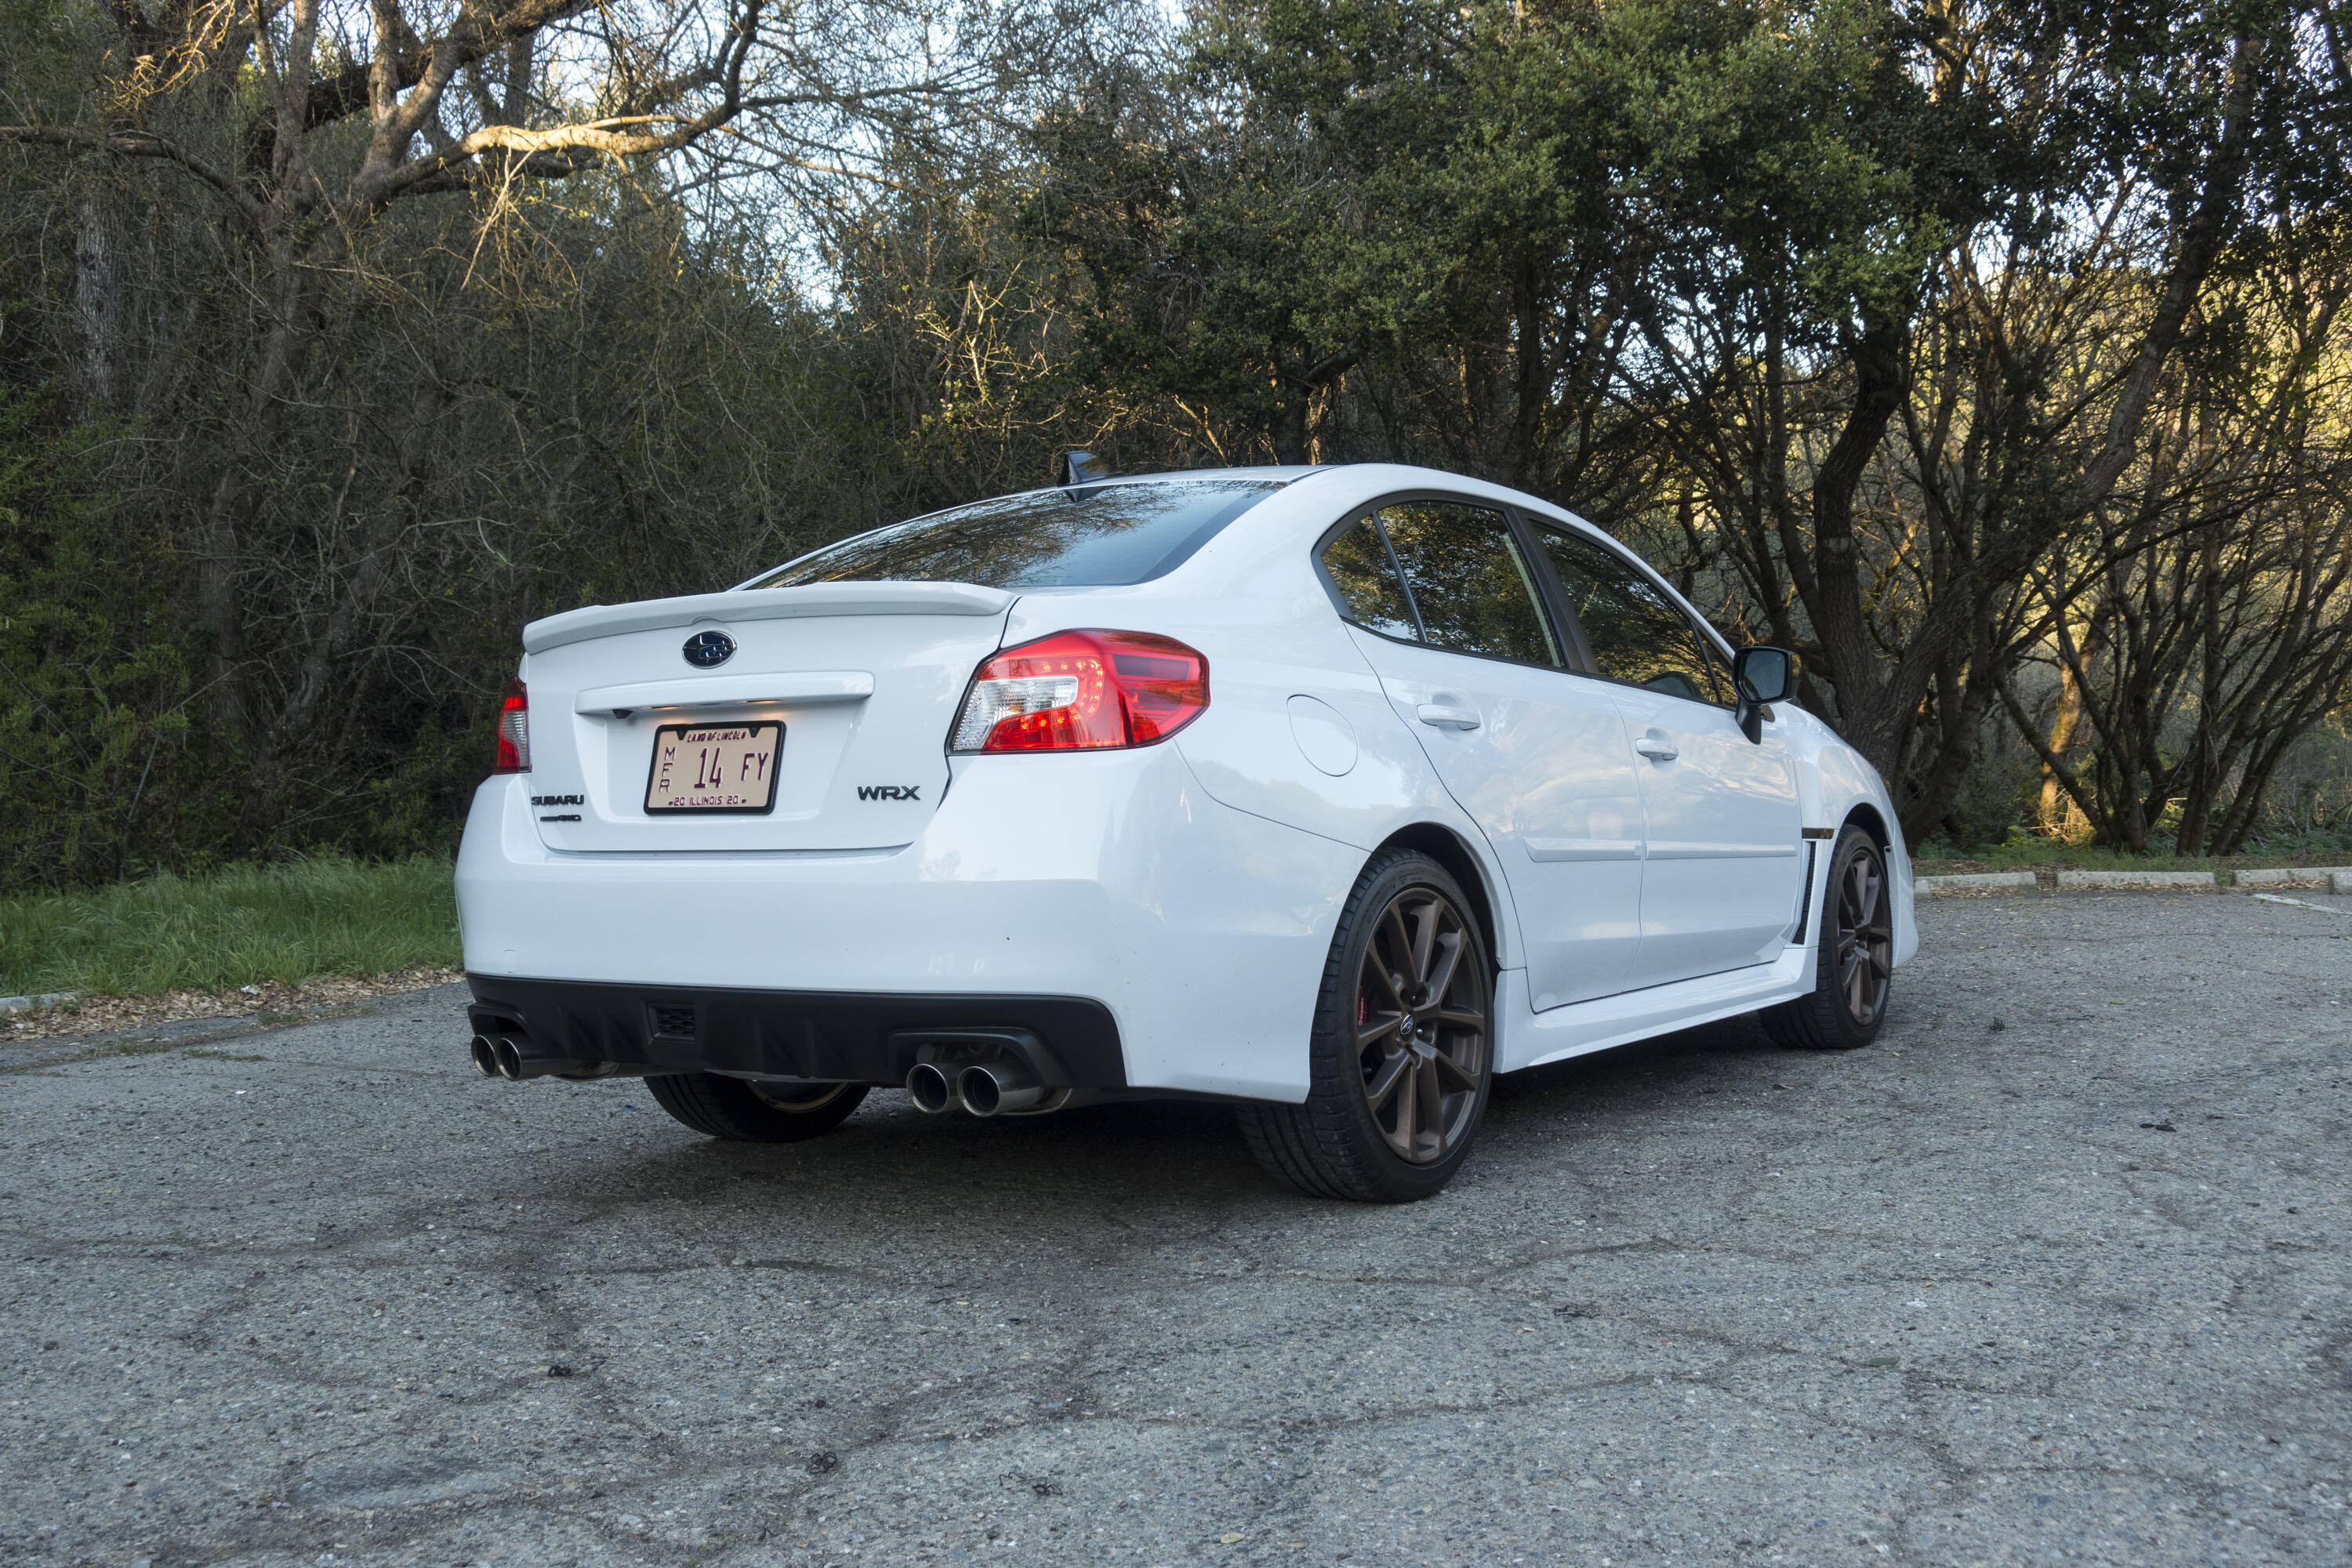 2020 Subaru WRX Series White